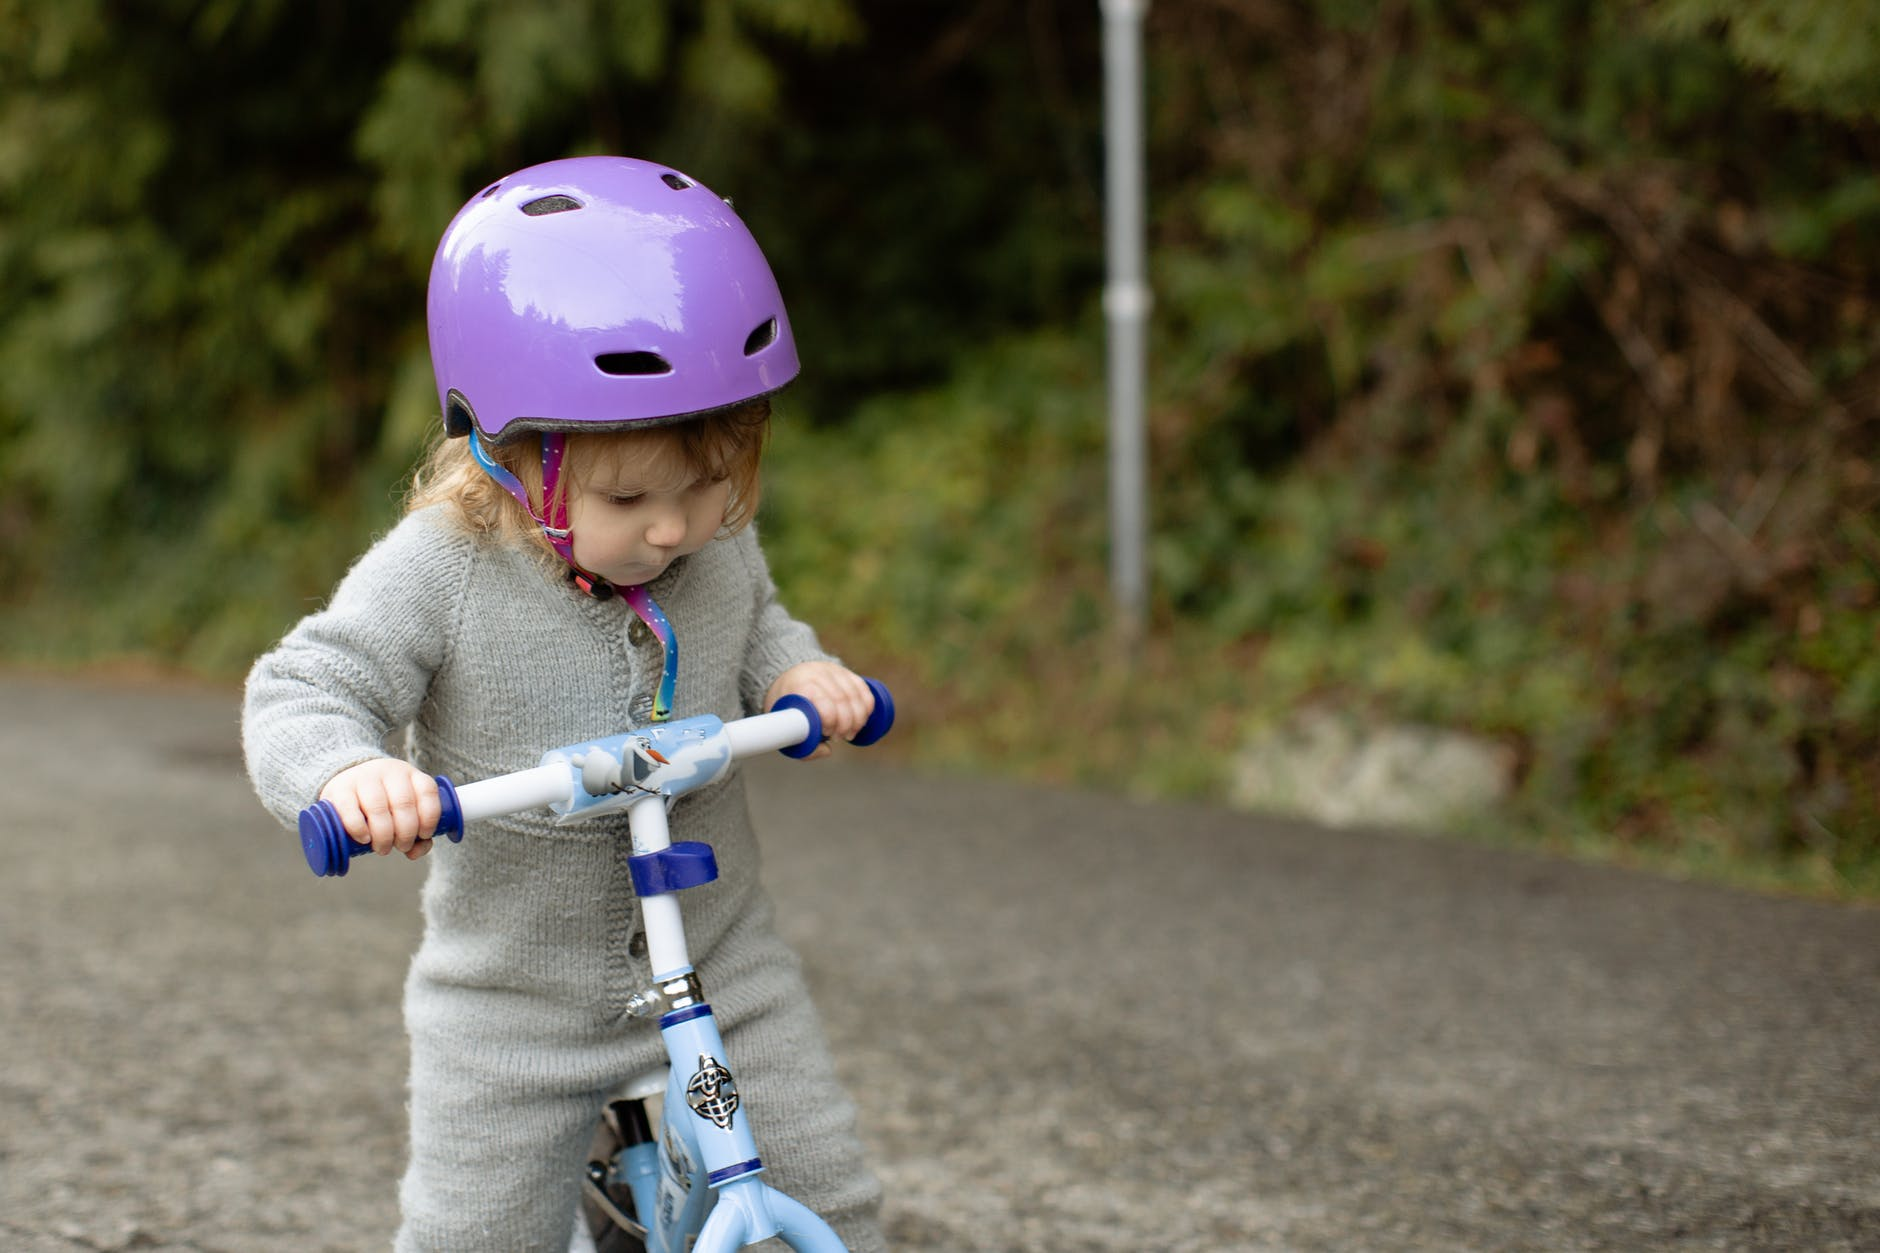 focused little cyclist girl riding runbike at countryside